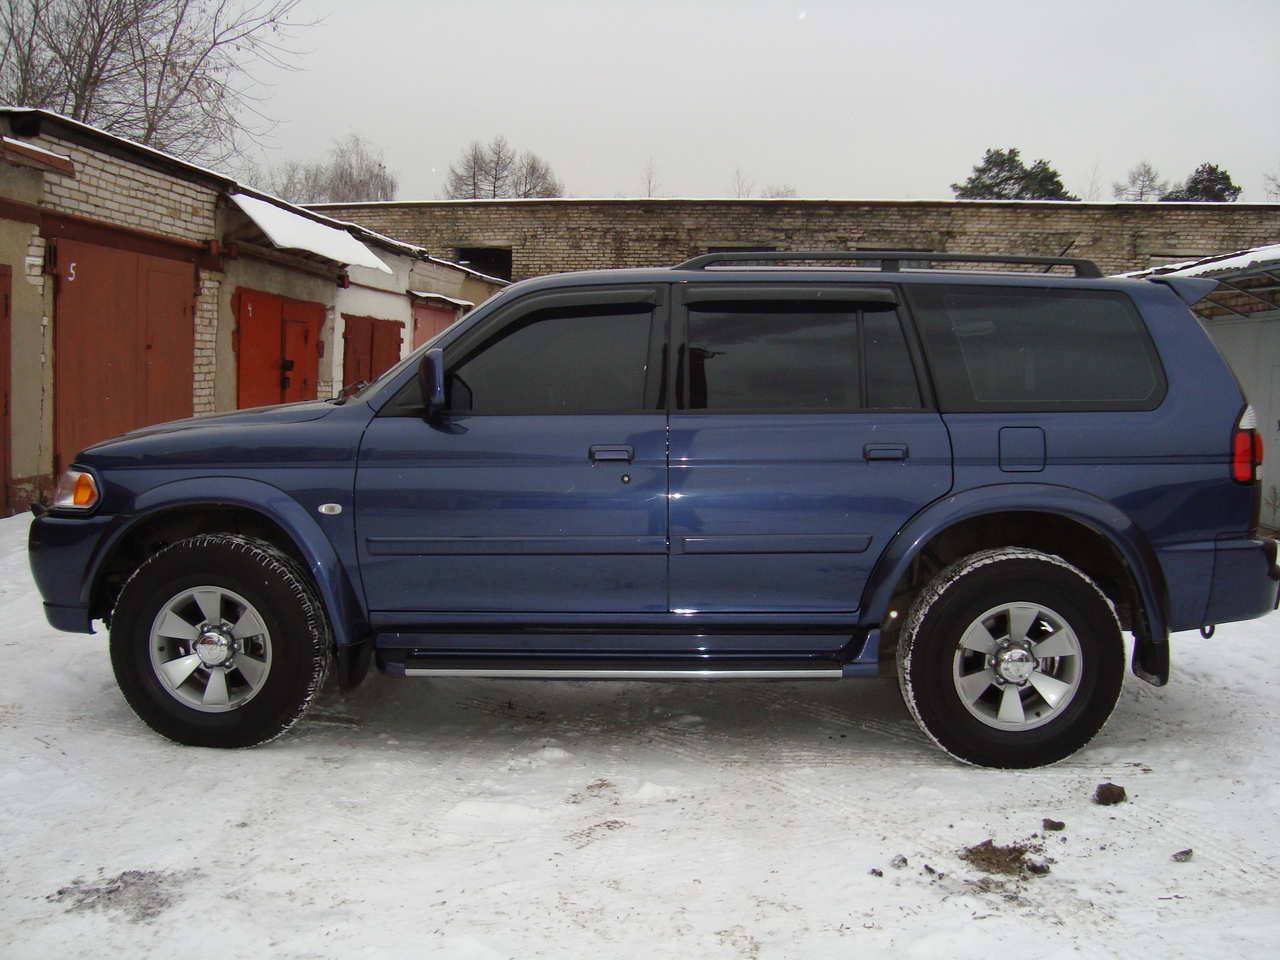 Used 2008 Mitsubishi Pajero Sport Photos, 3000cc., Gasoline, Automatic For Sale